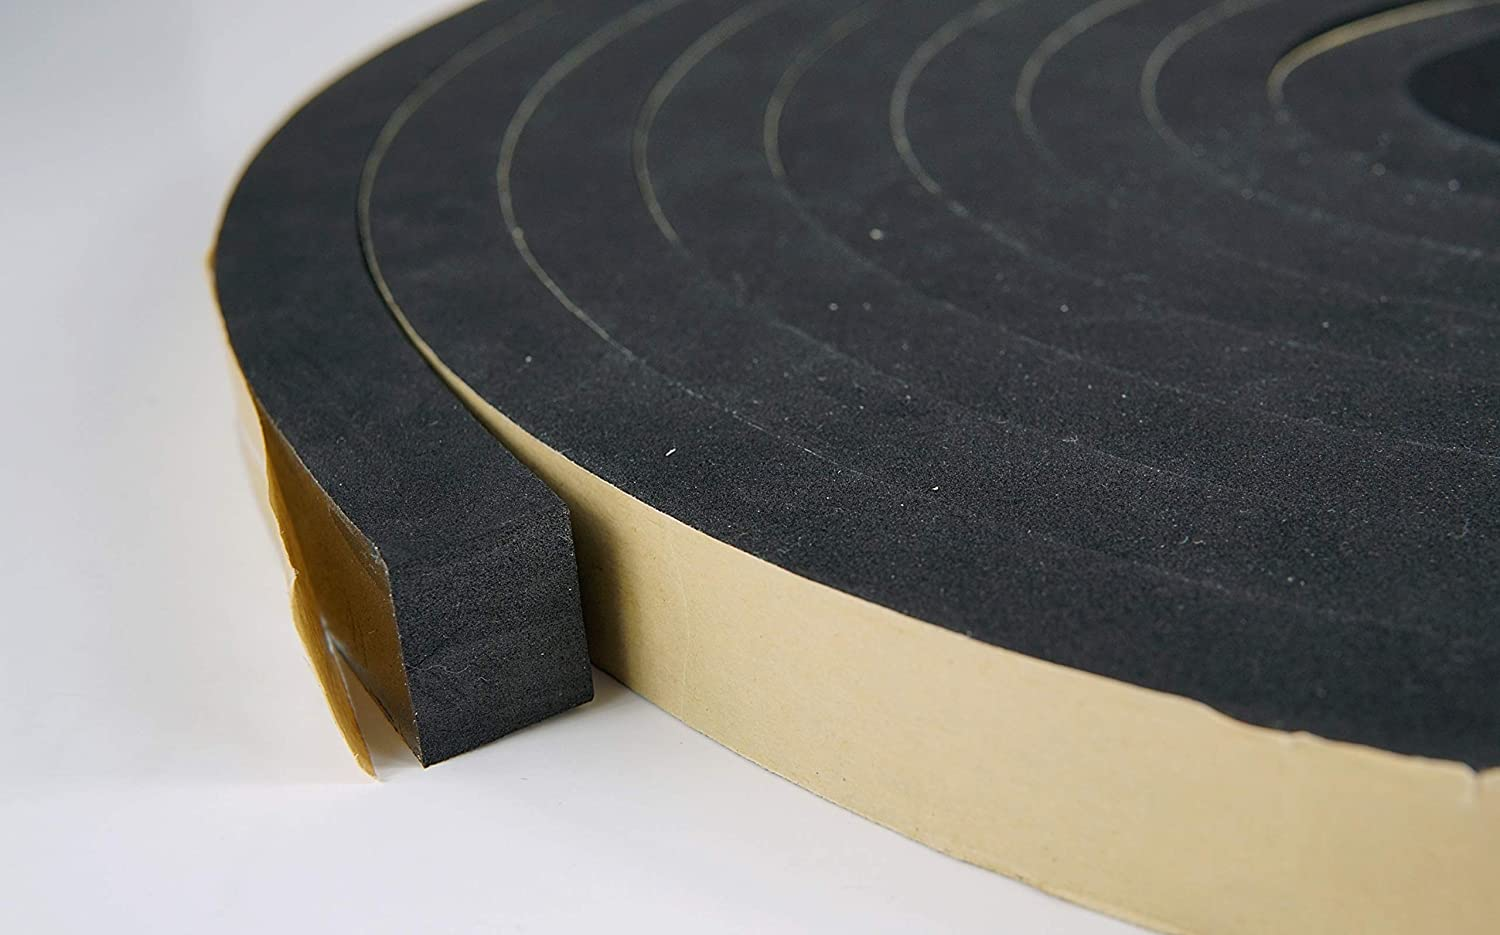 Neoprene Foam Weather Seal High Density Stripping with Adhesive Backing 1/2 Inch Wide 1/4 Inch Thick 50 Feet Long (1 inch x 3/4 inch x 25 feet)